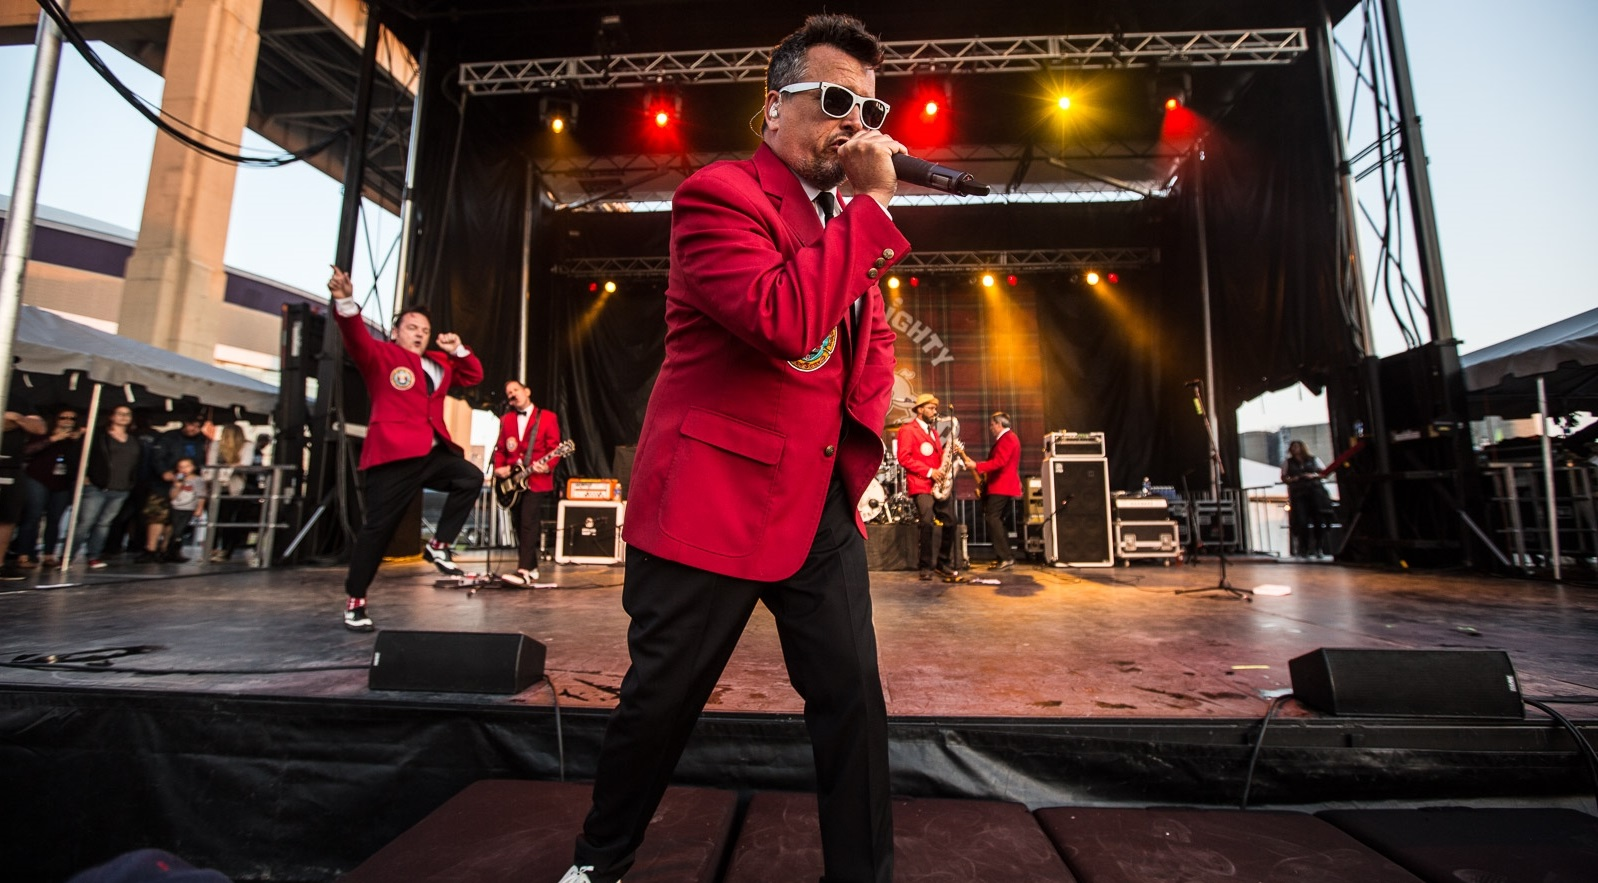 The Mighty Mighty Bosstones' lead vocalist, Dicky Barrett, led the charge on Thursday night in Buffalo. (Chuck Alaimo/Special to The News)